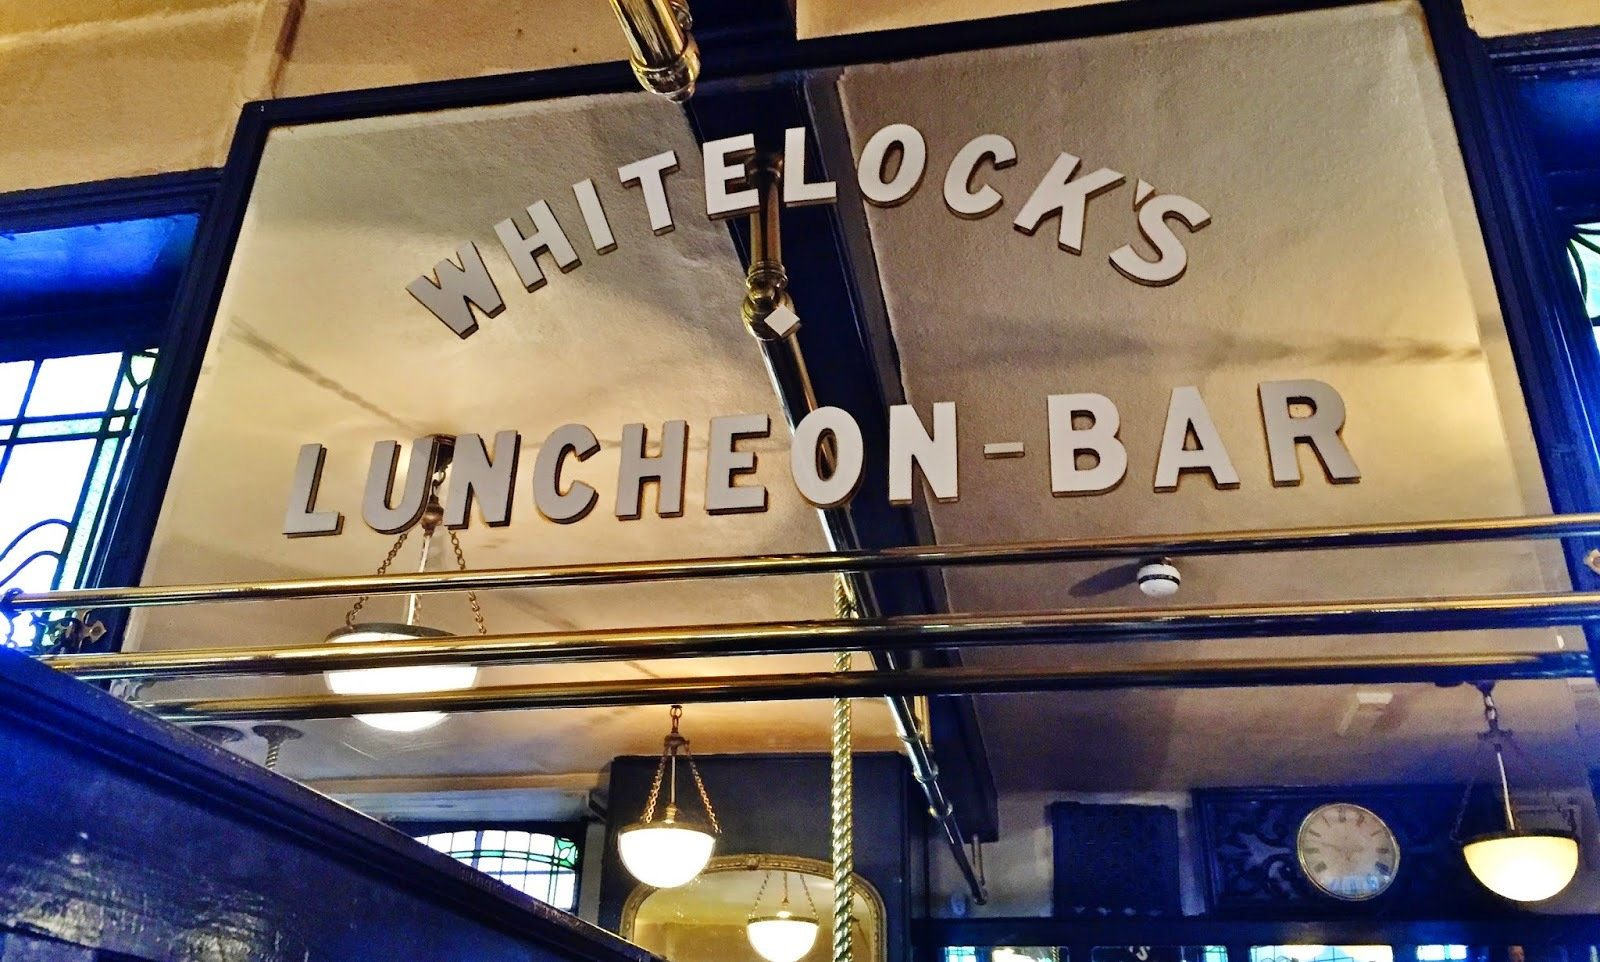 Whitelock's Ale House - Sunday Lunch - Leeds City Centre